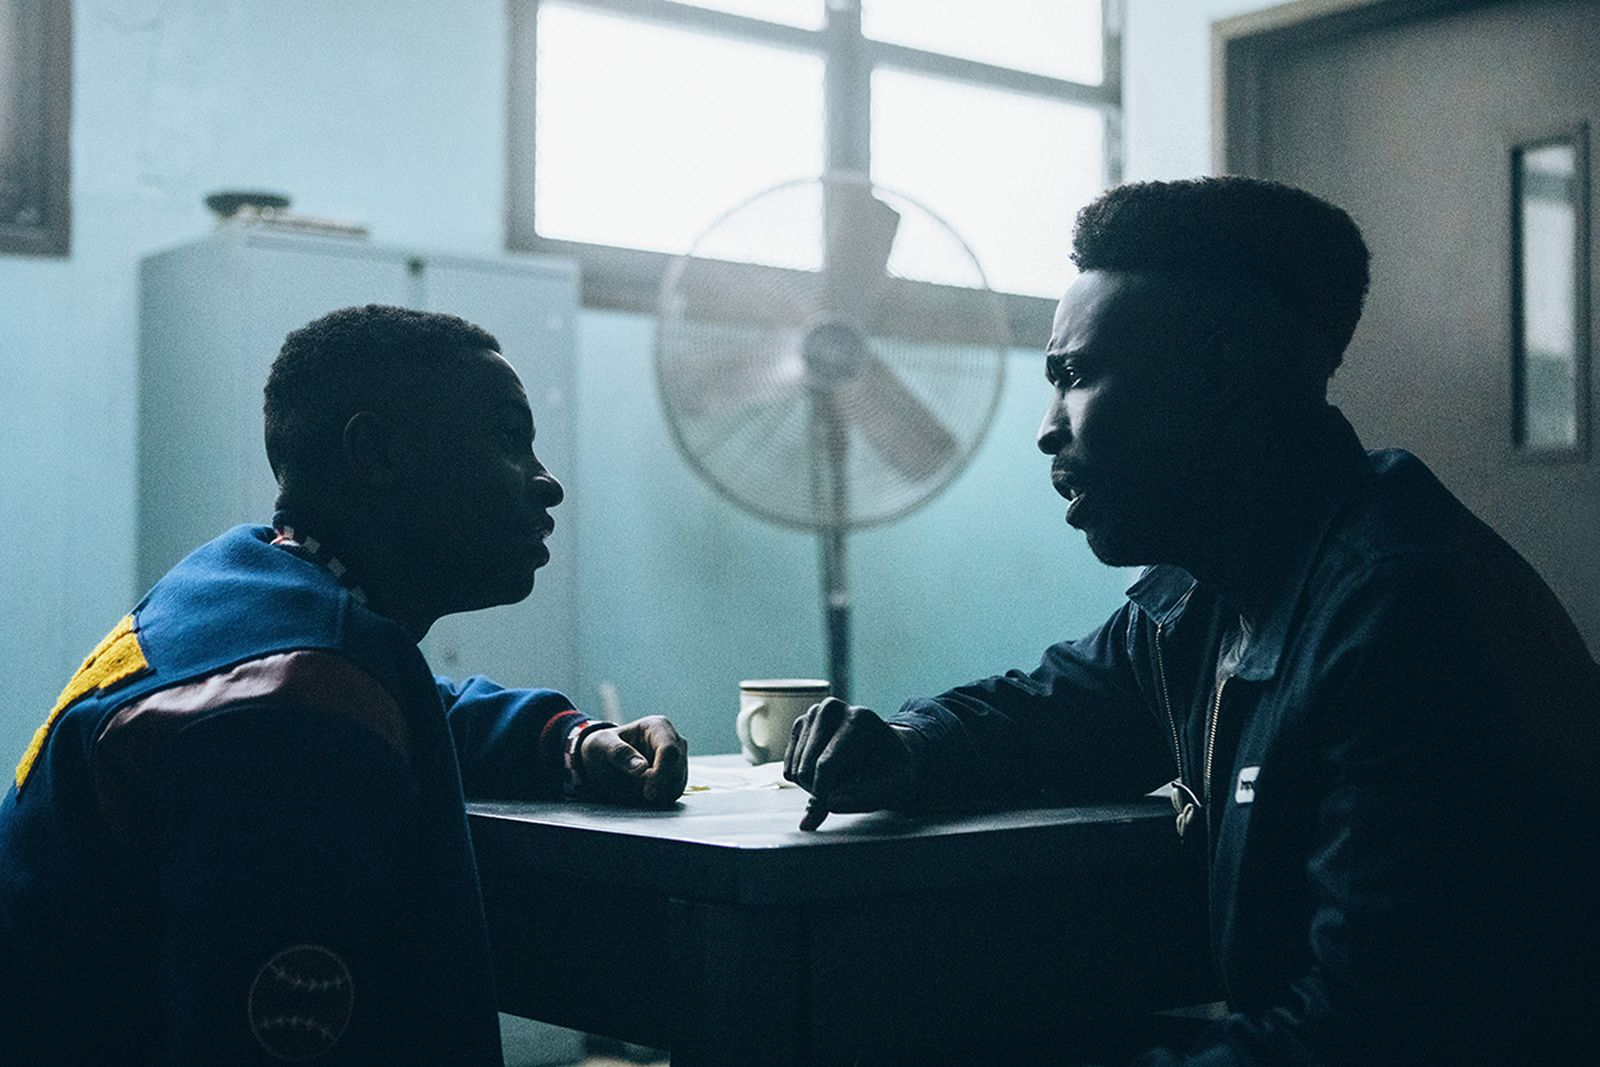 still from Netflix's 'when they see us' series